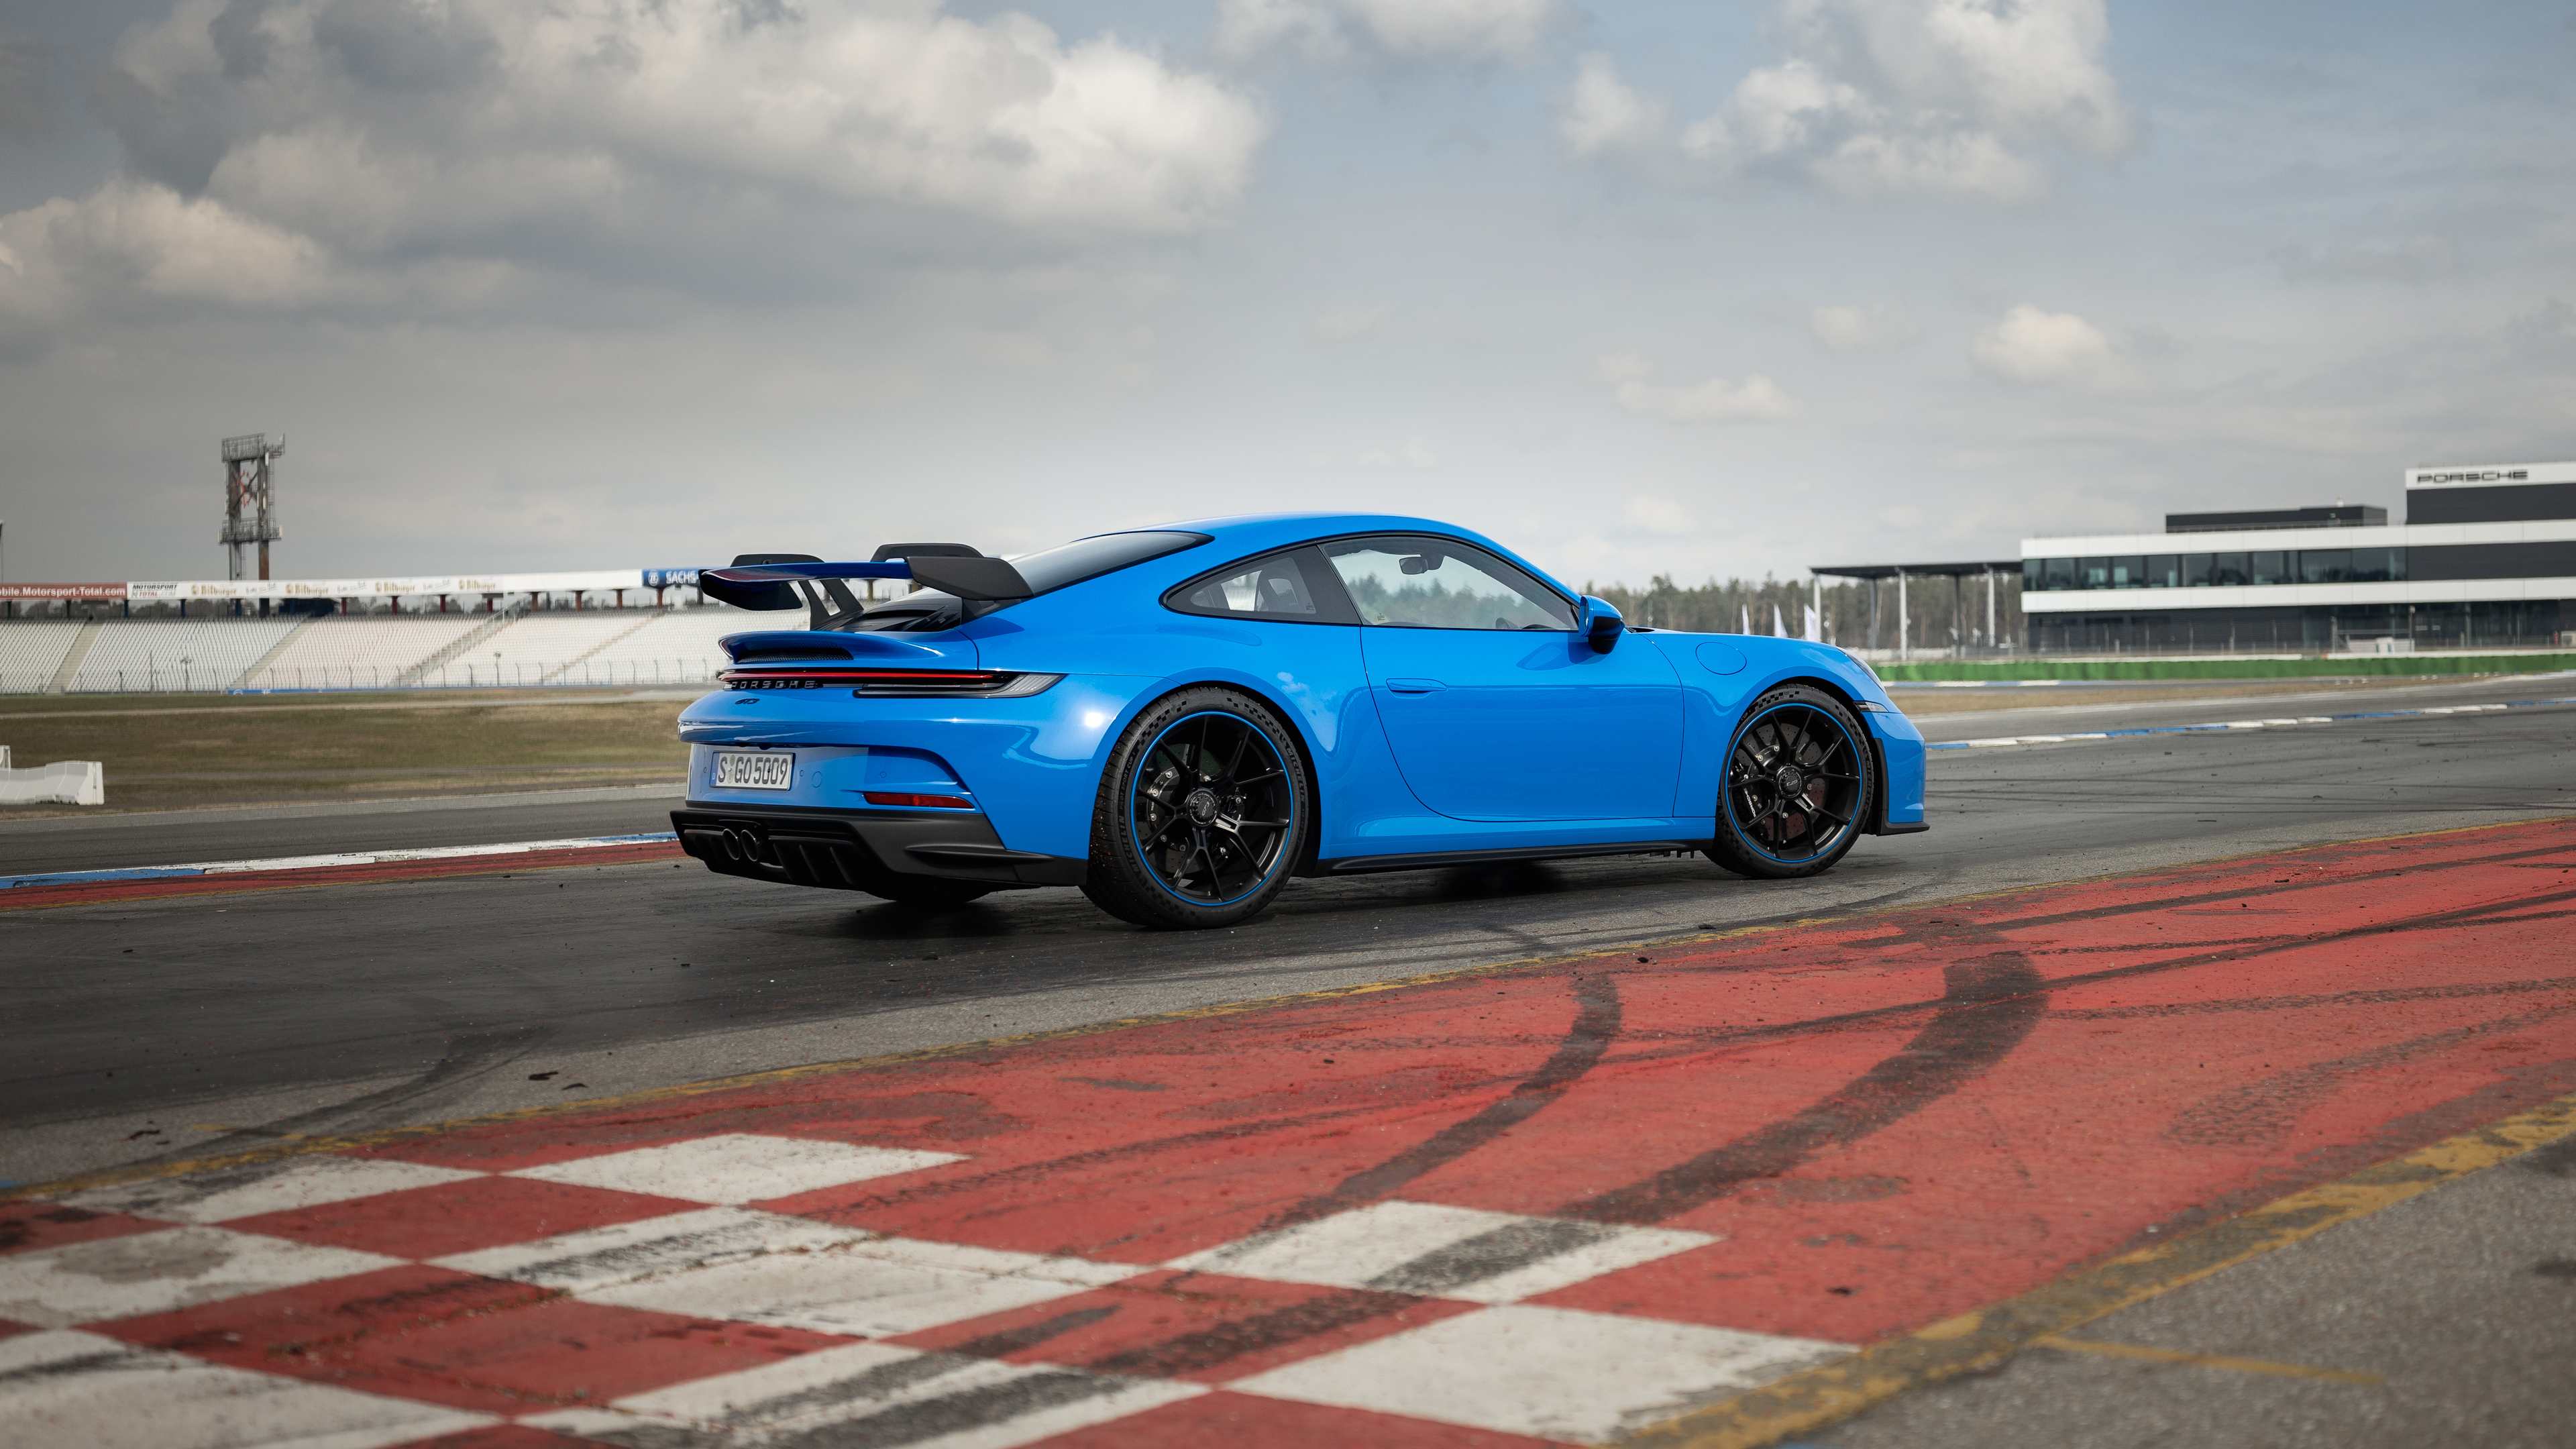 Wallpaper 2021 Porsche 911 GT3 blue car on the track